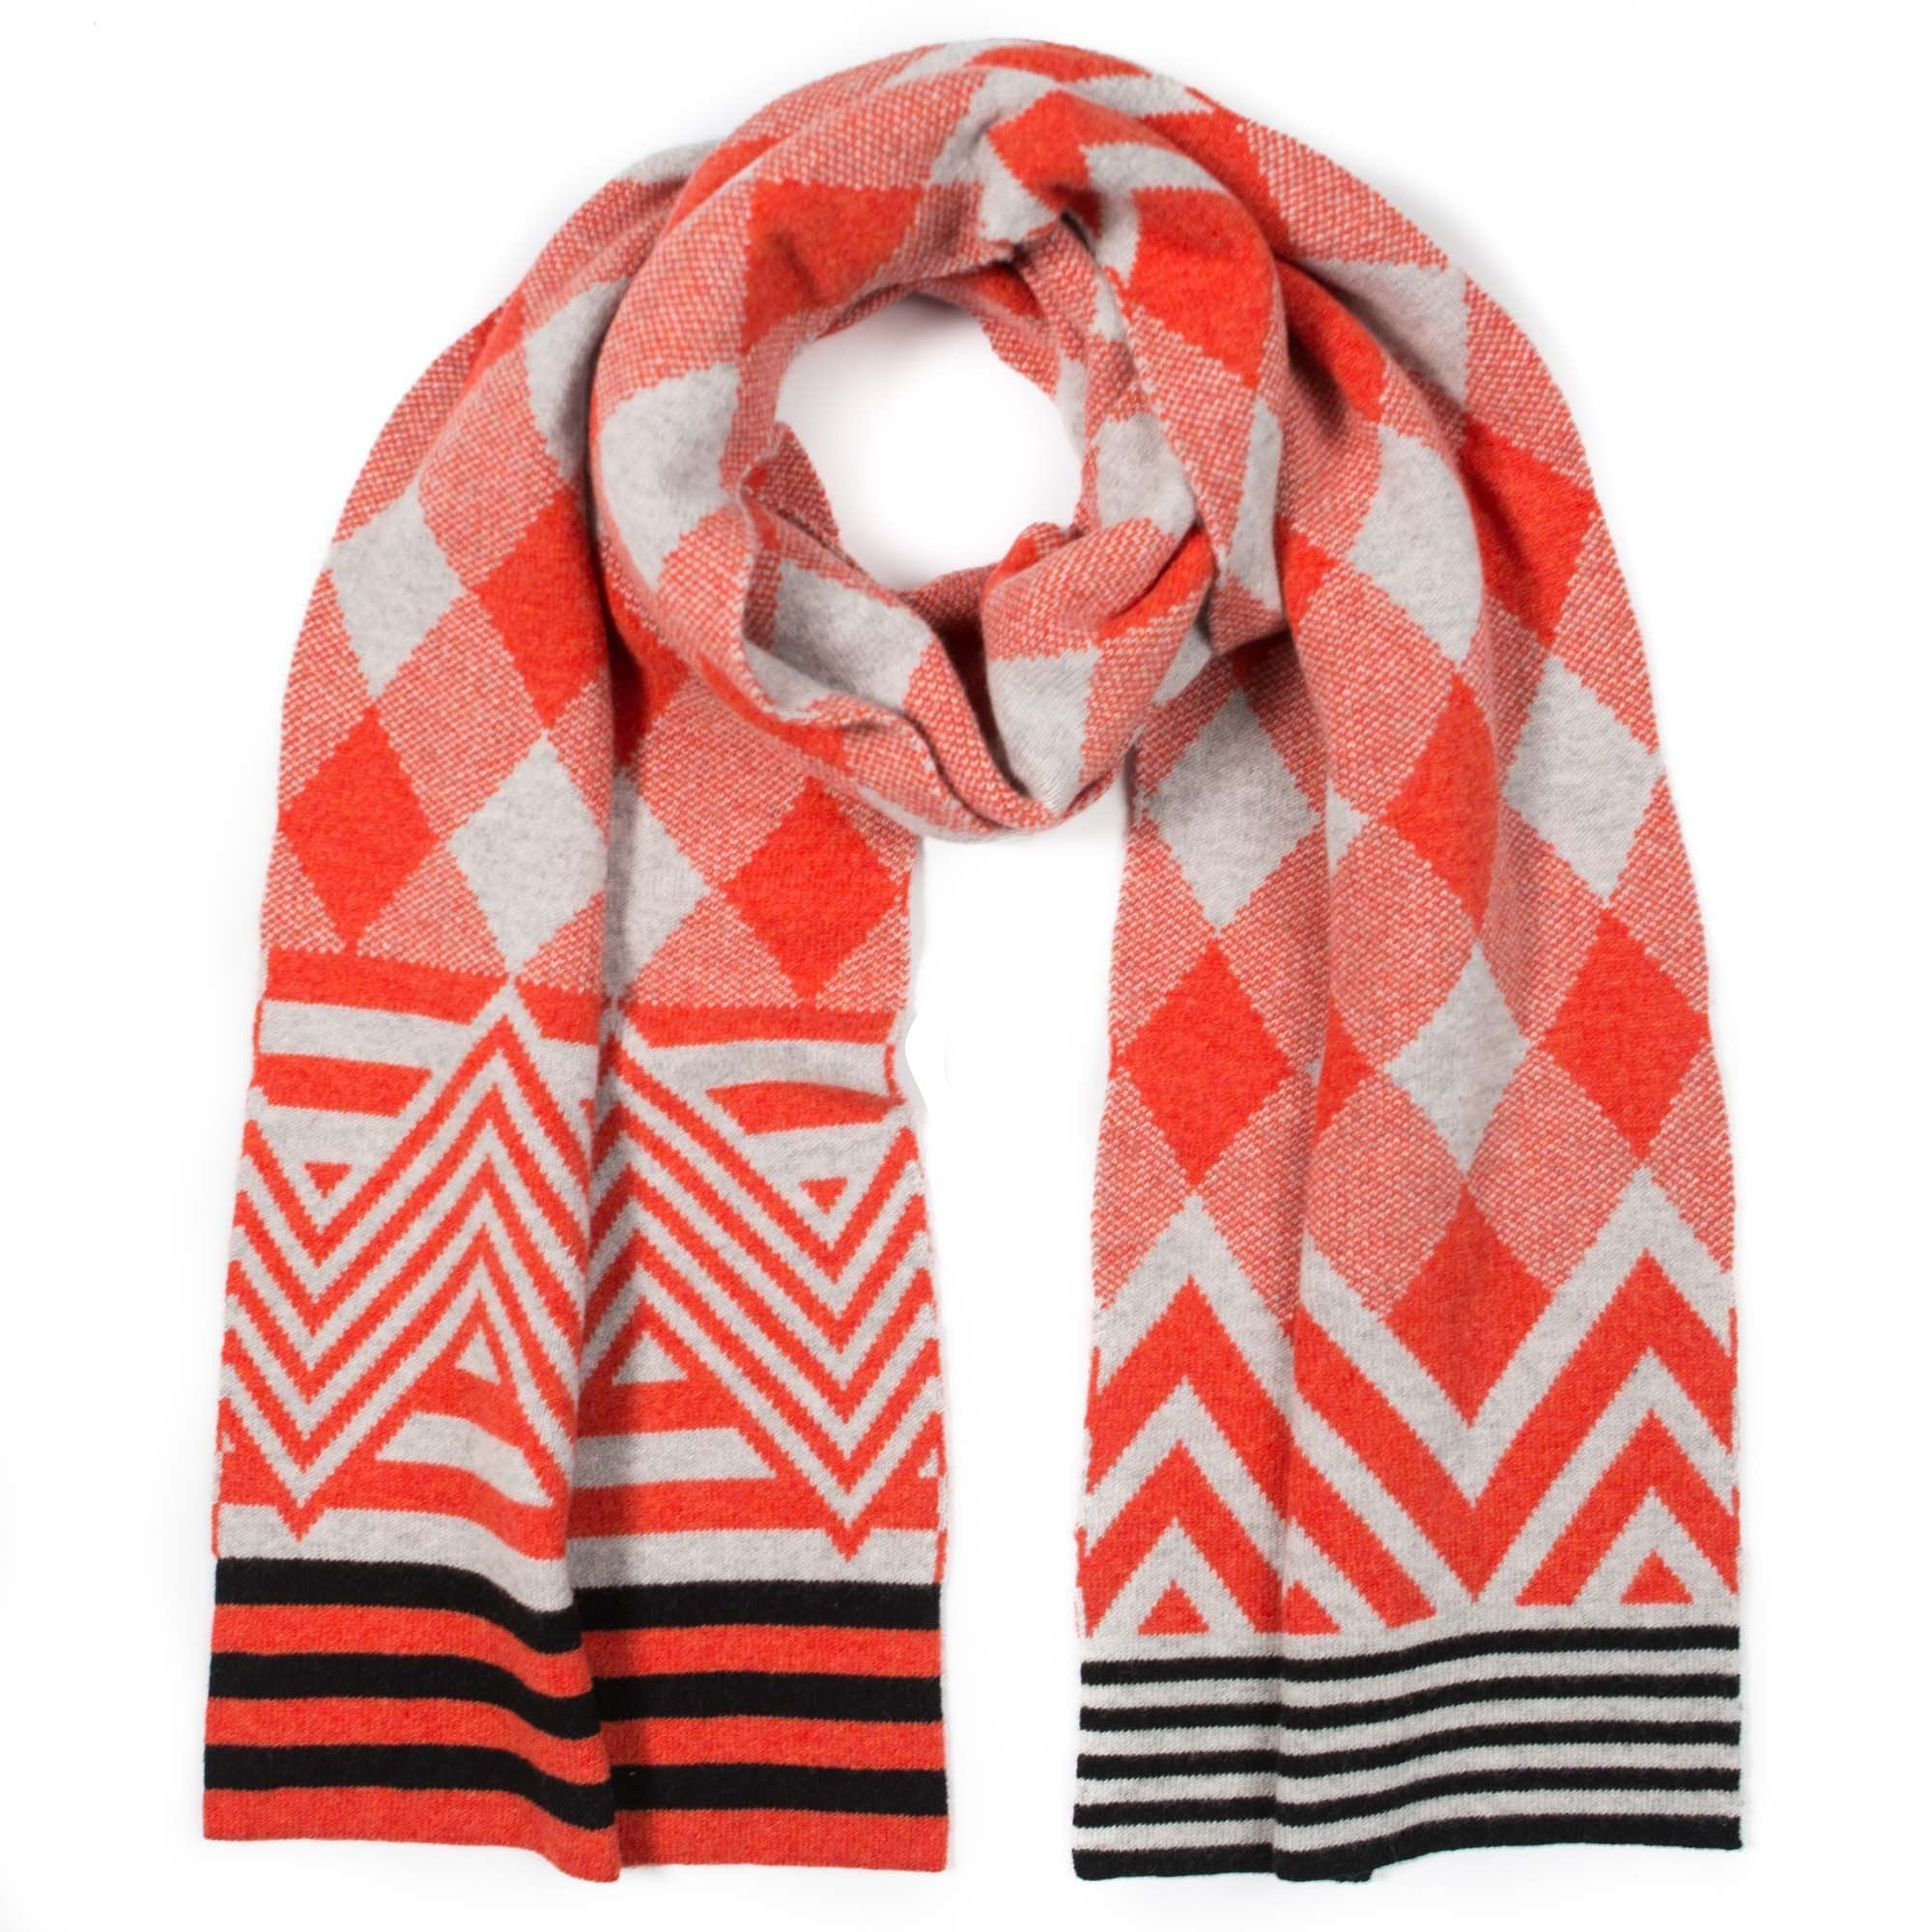 ARGYLE SCARF ORANGE & GREY - GREEN THOMAS